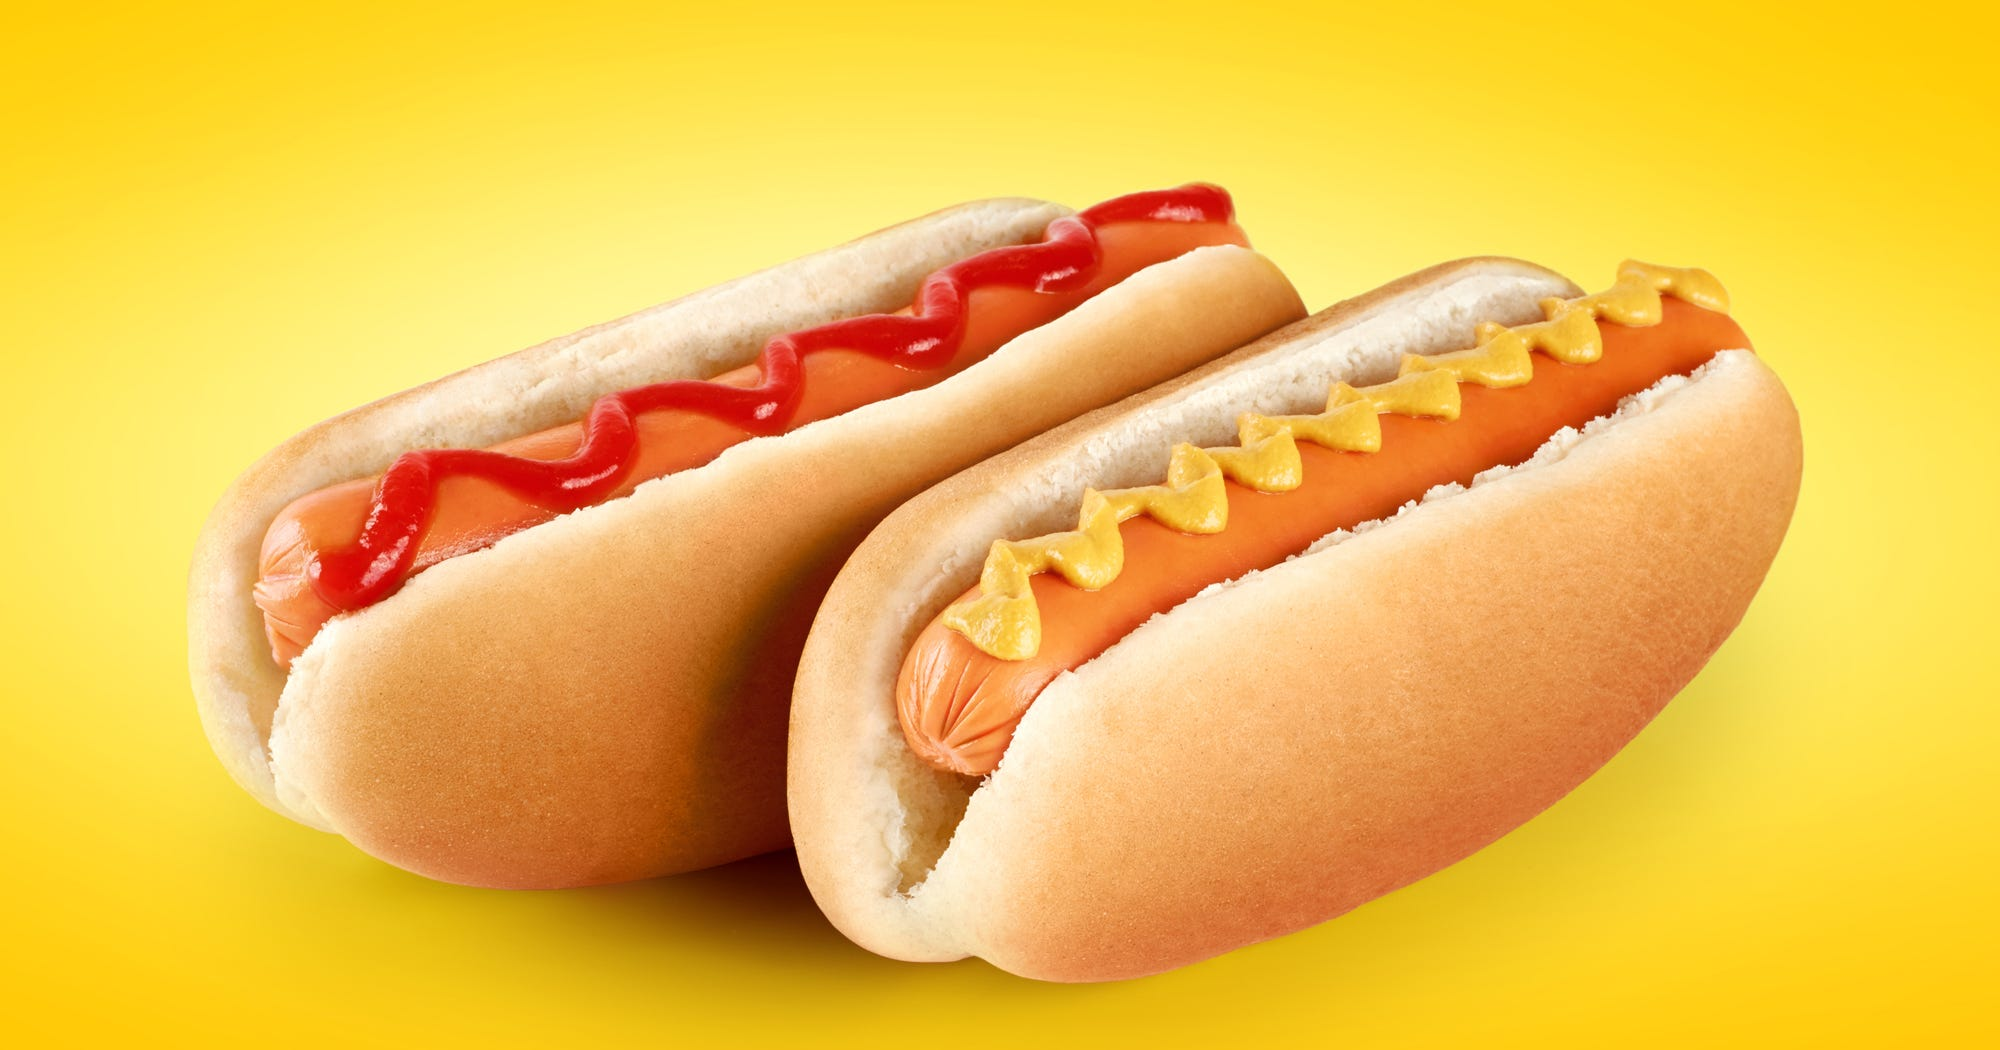 Refinery Hot Dog